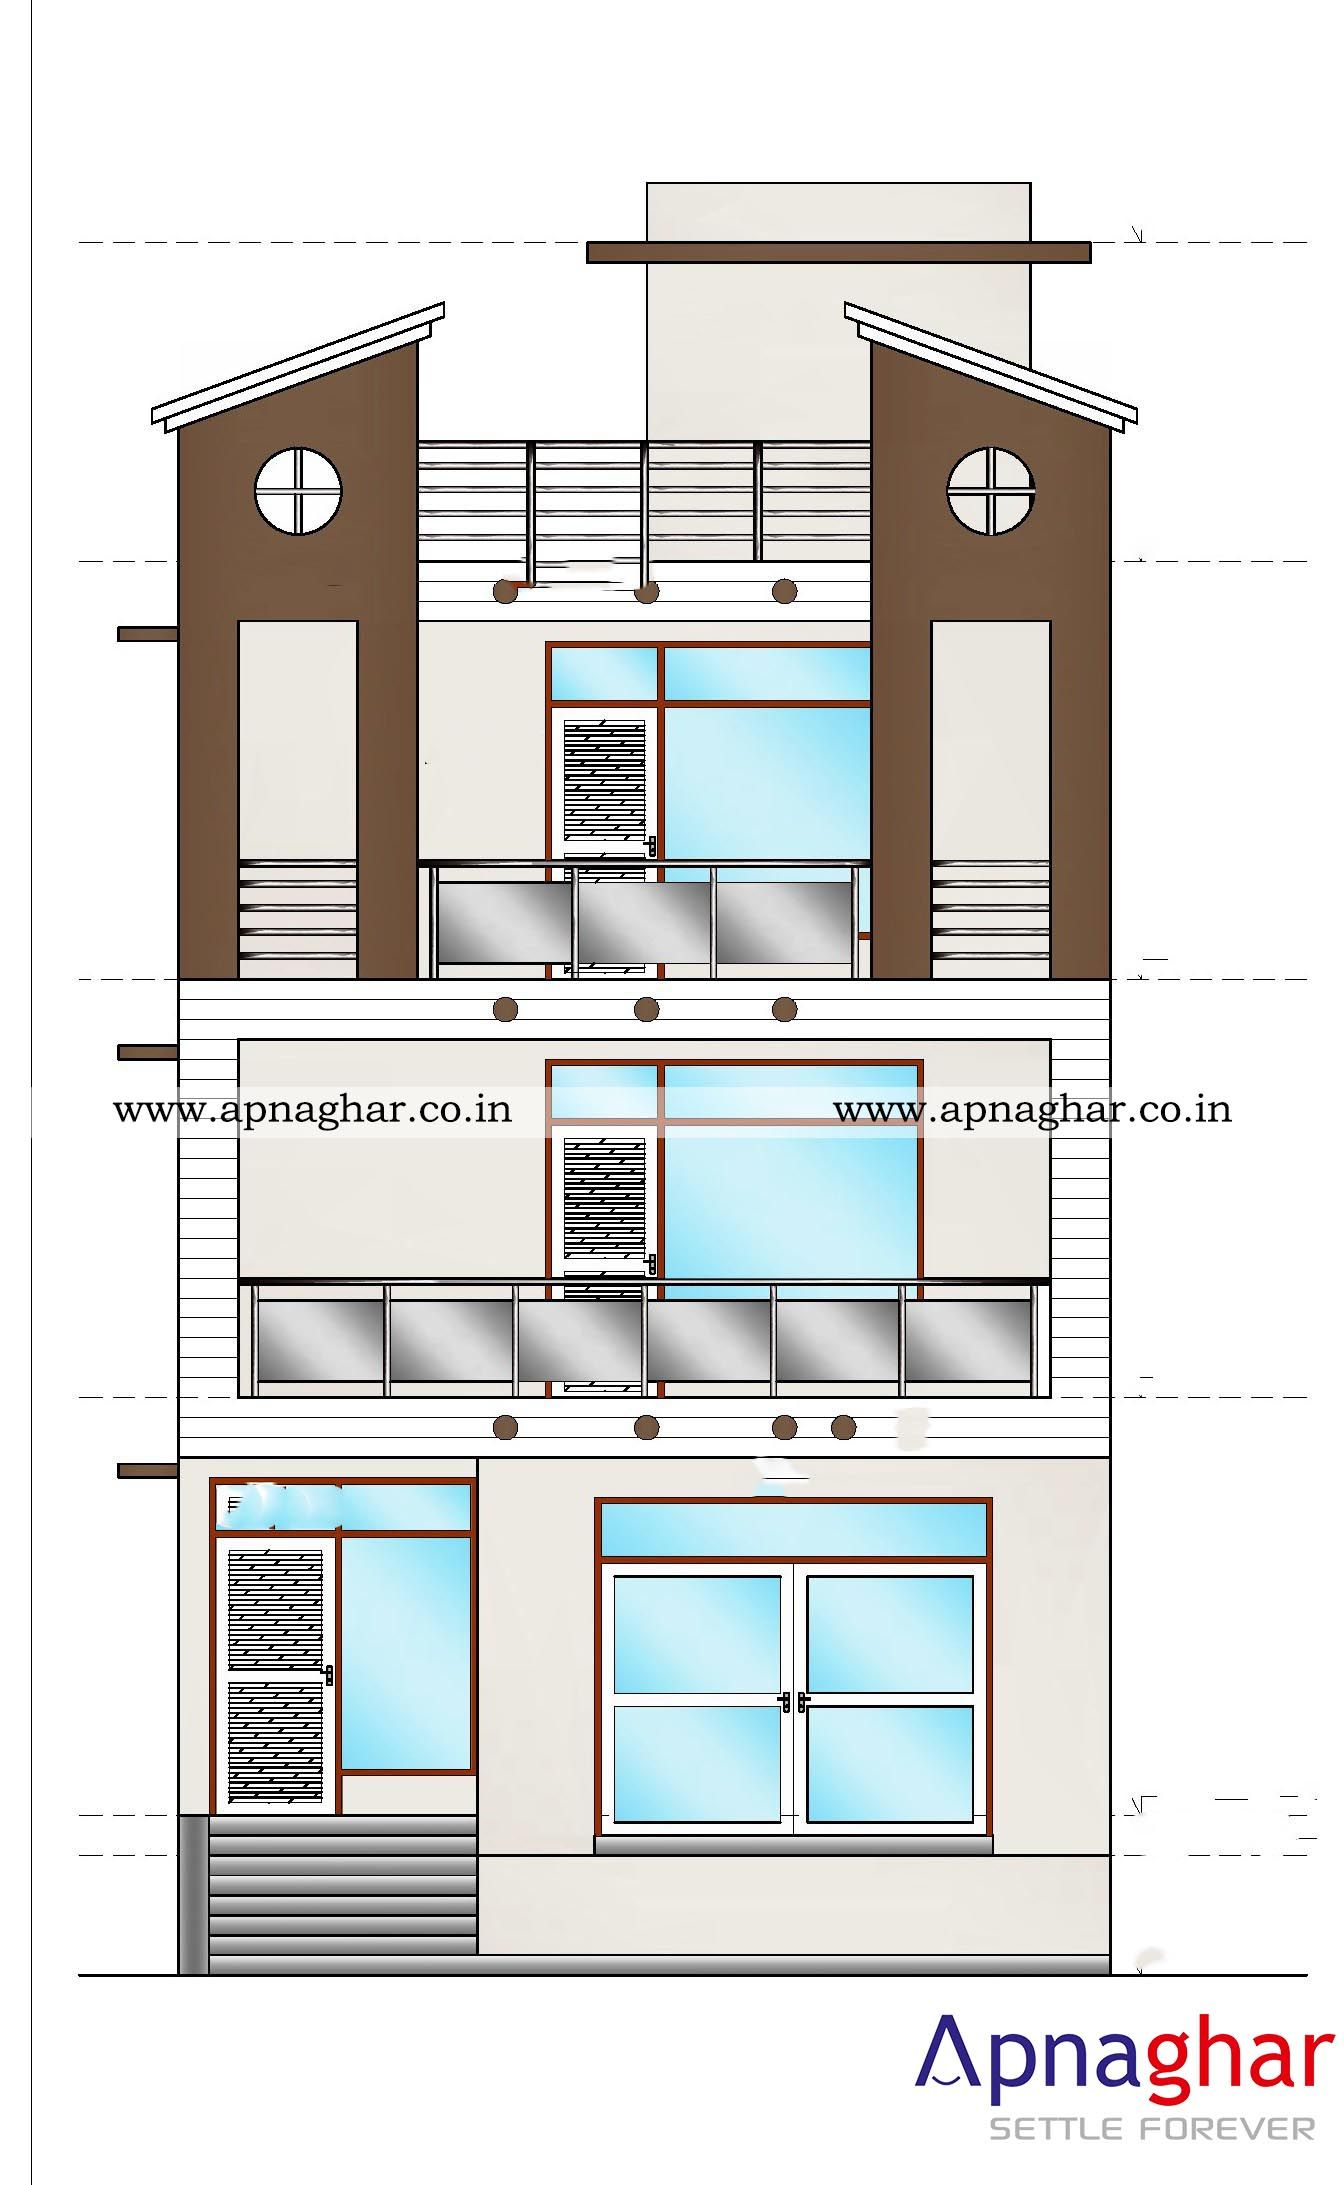 Building Front Elevation Drawings : D elevation drawings for your home visit apnaghar